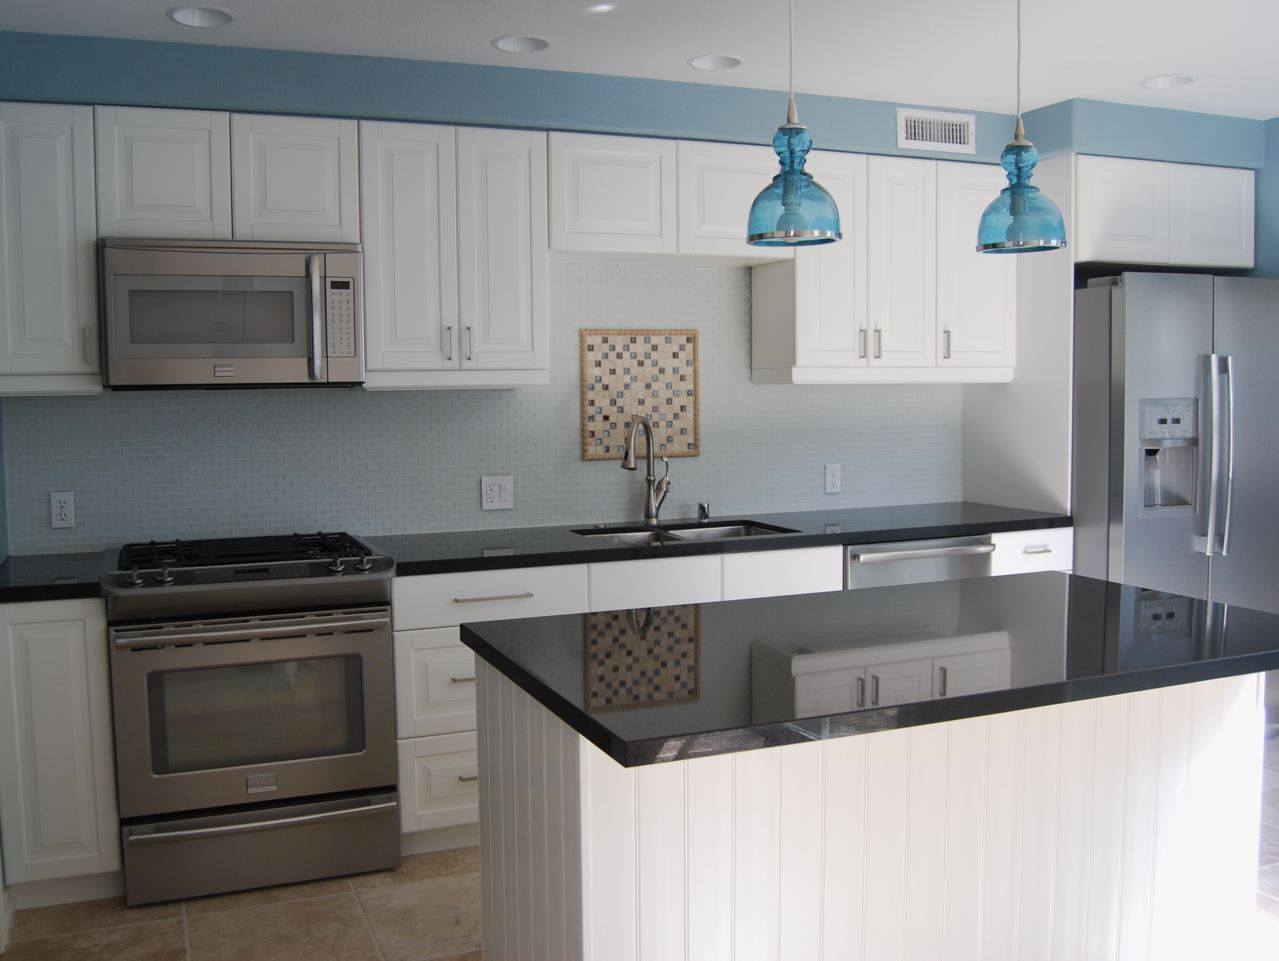 Ikea Kitchen Cupboards Beach House Backsplash Ideas The Sektion Cabinets Are Available Two Colors